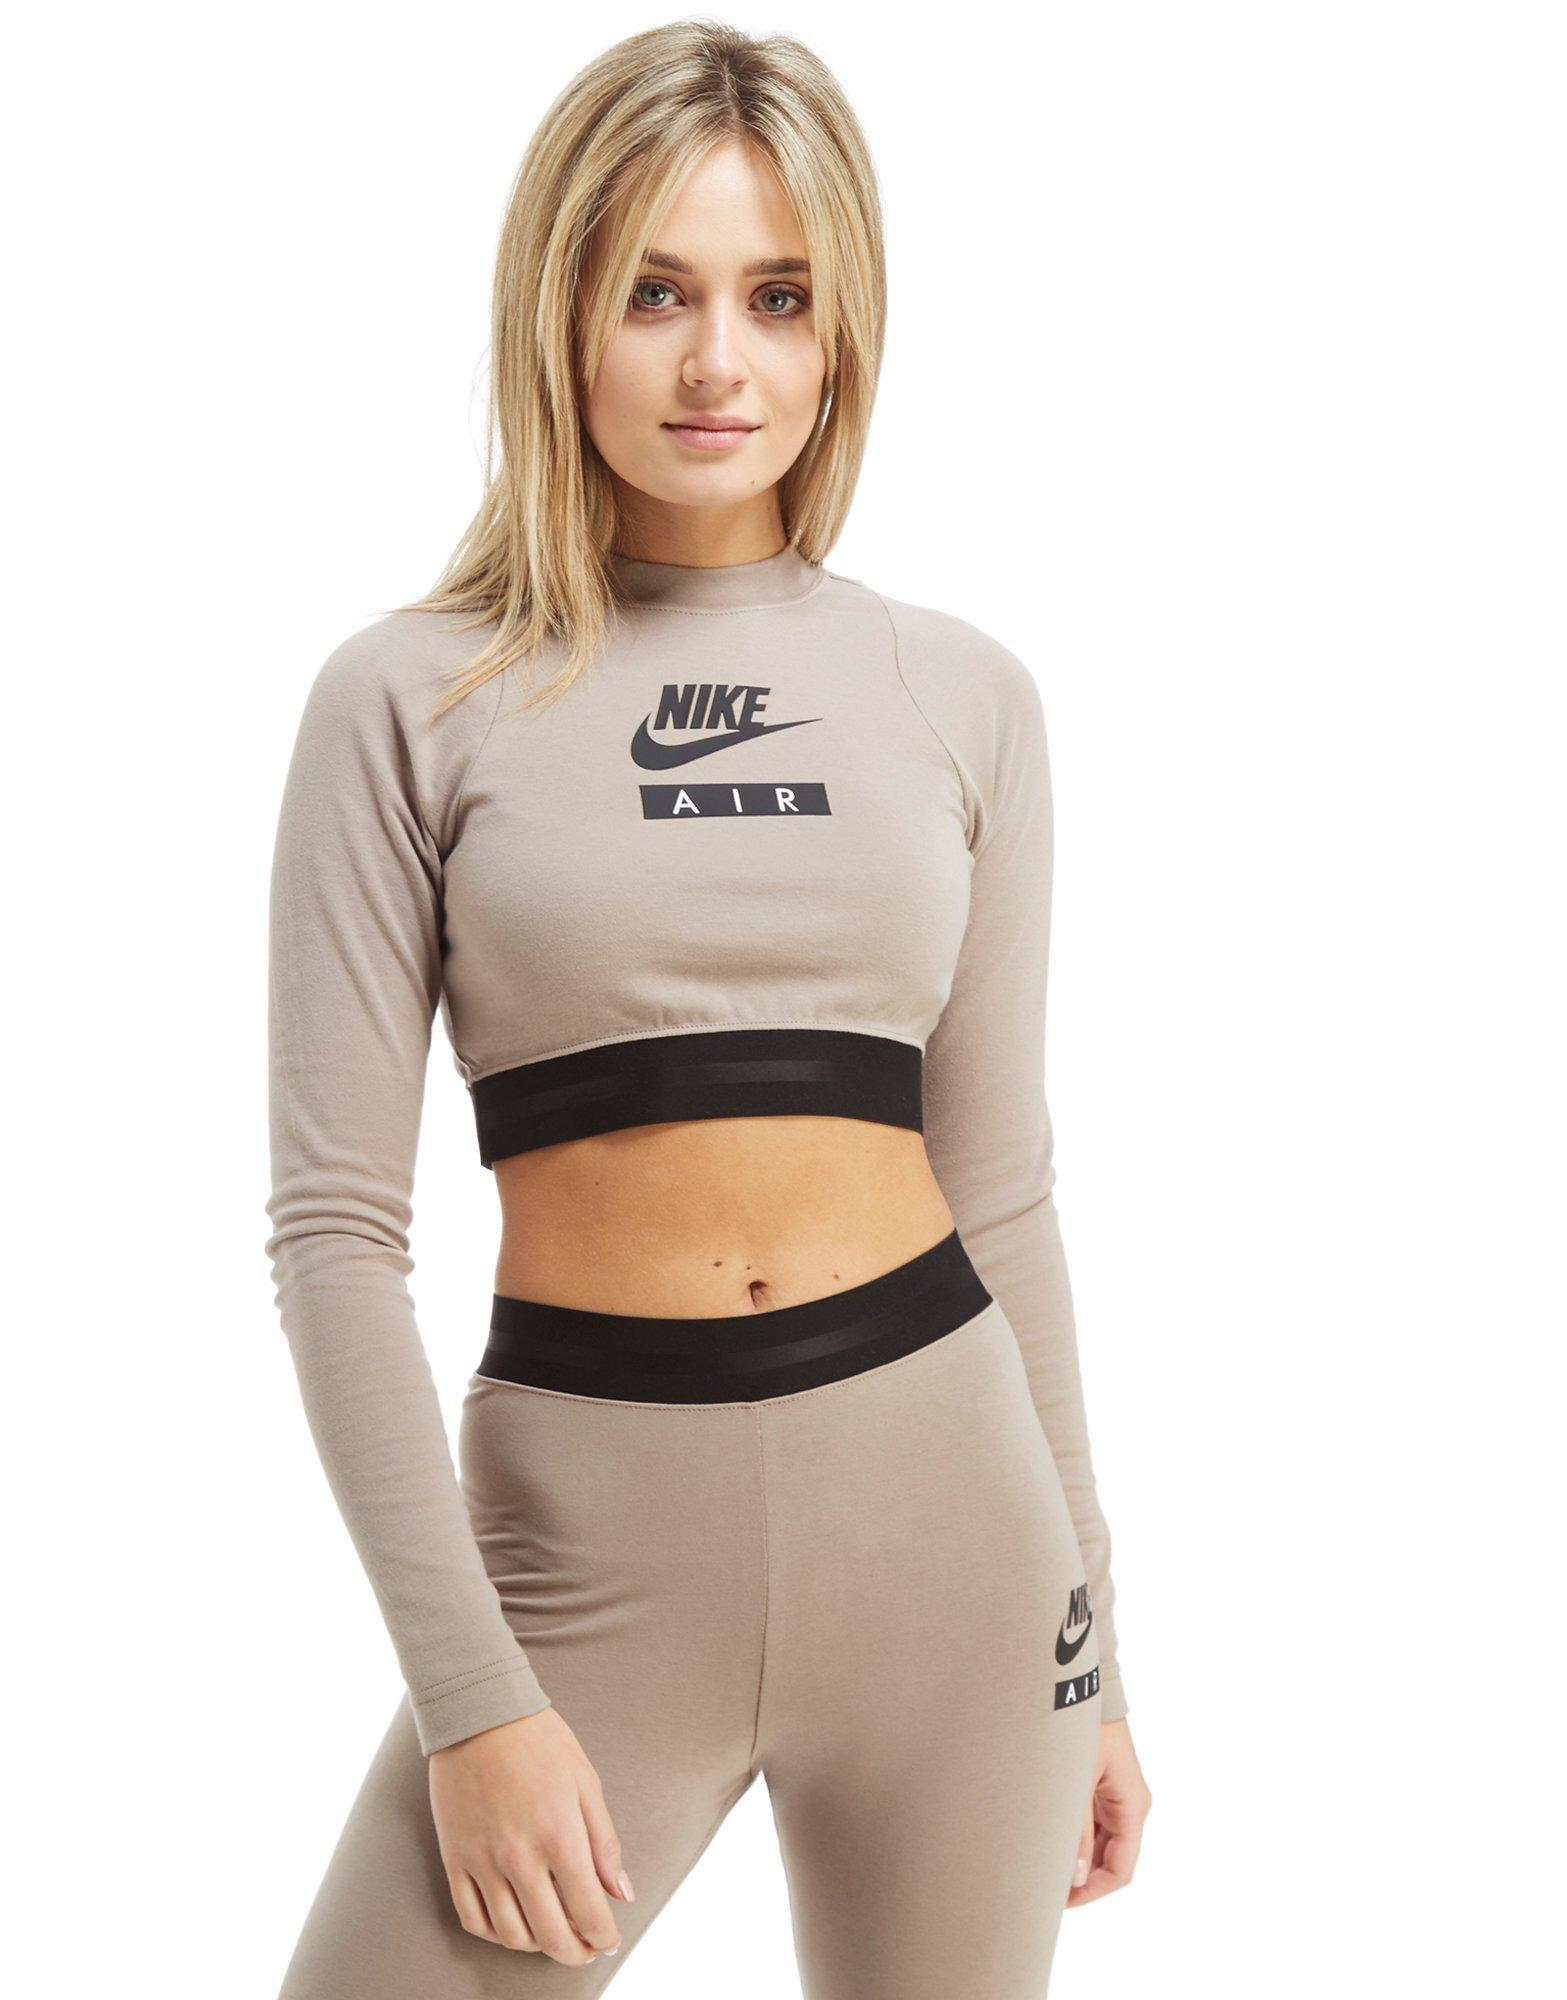 0da77b935 Jd Sports Nike Ladies Tops